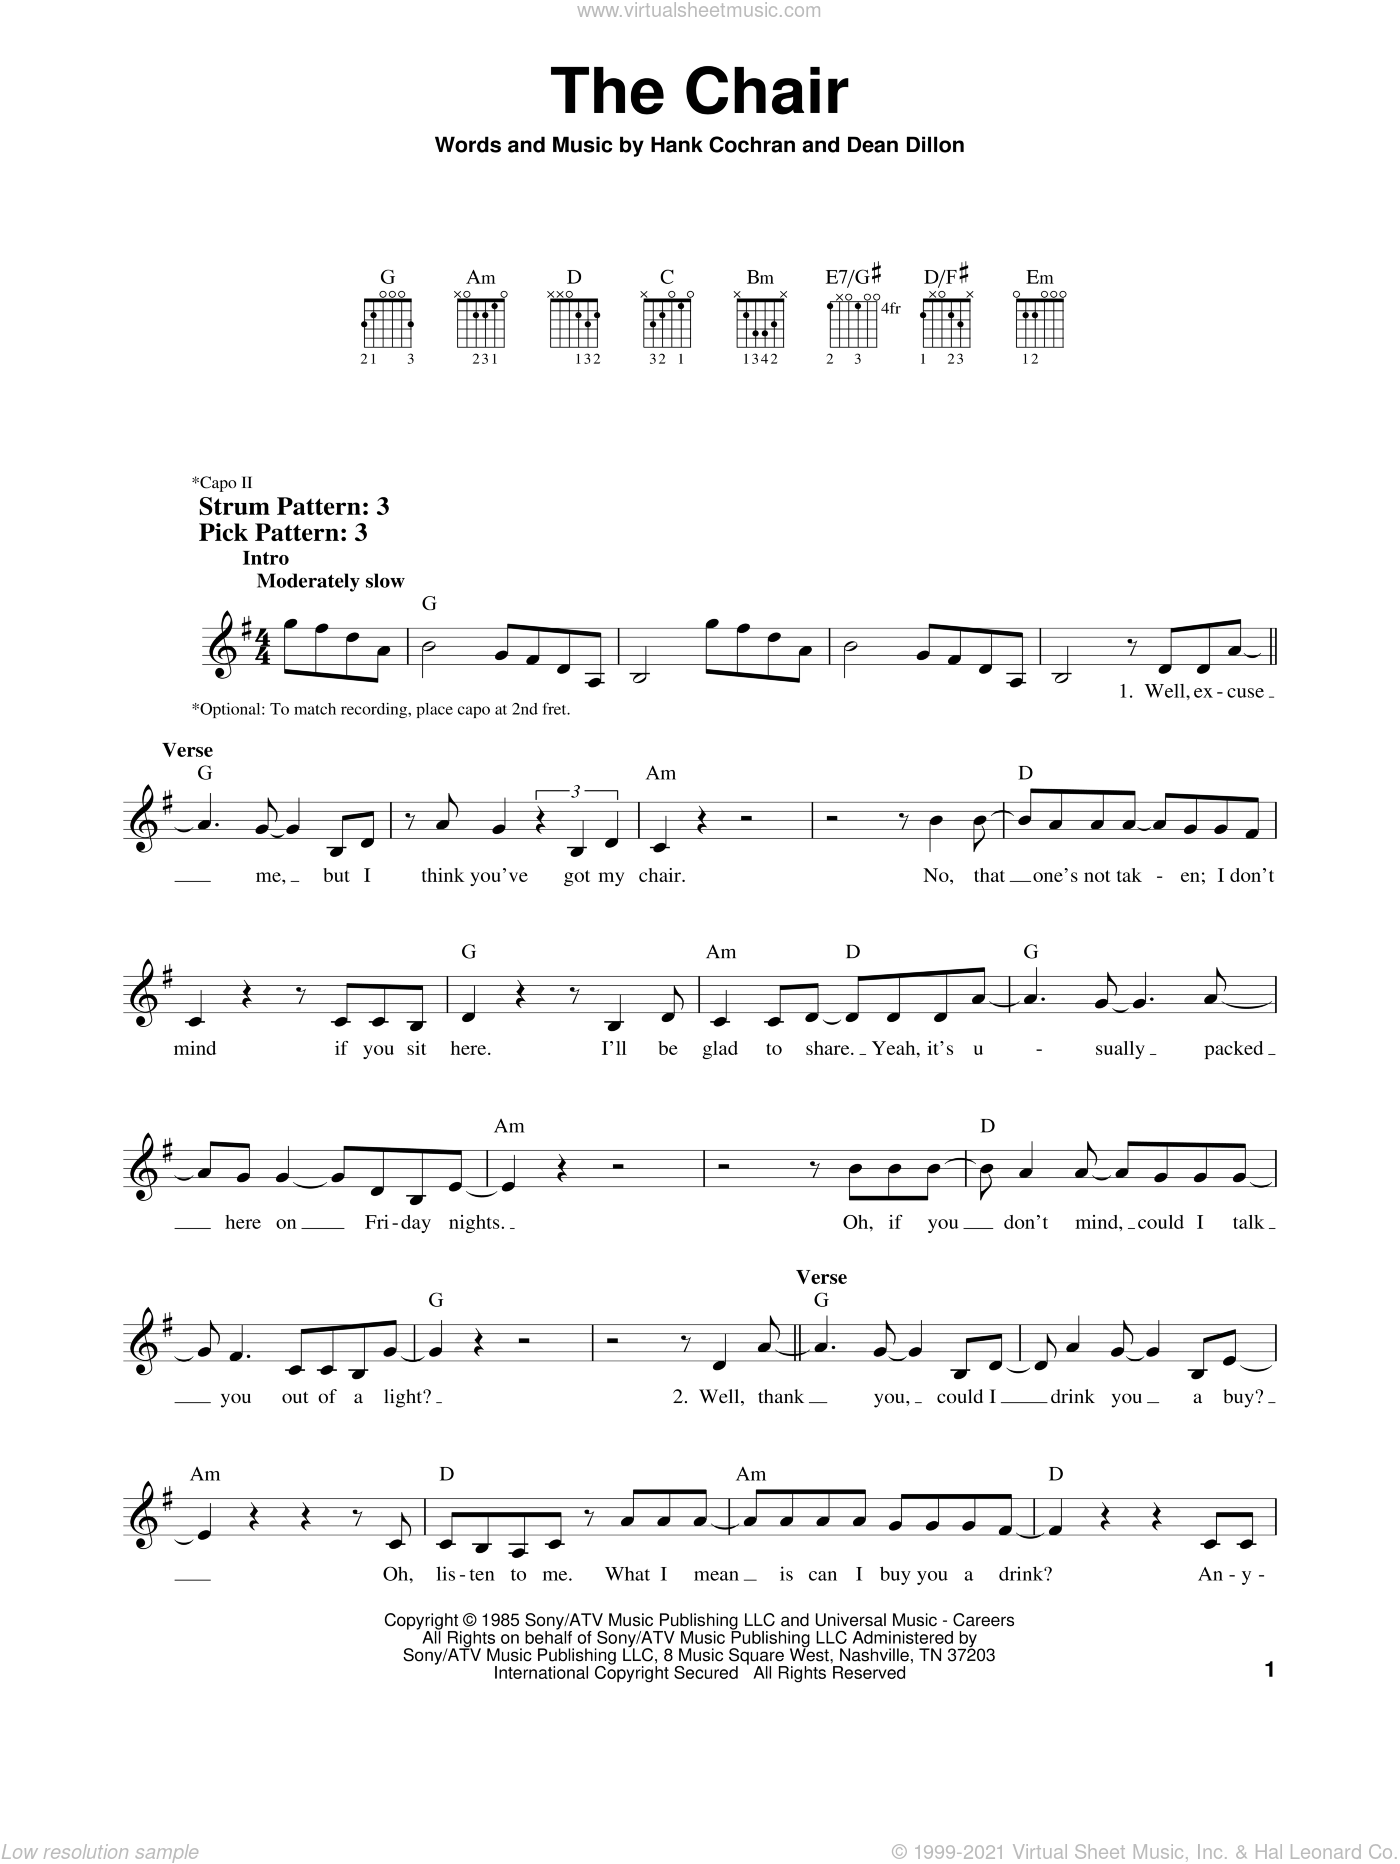 The Chair sheet music for guitar solo (chords) by Hank Cochran